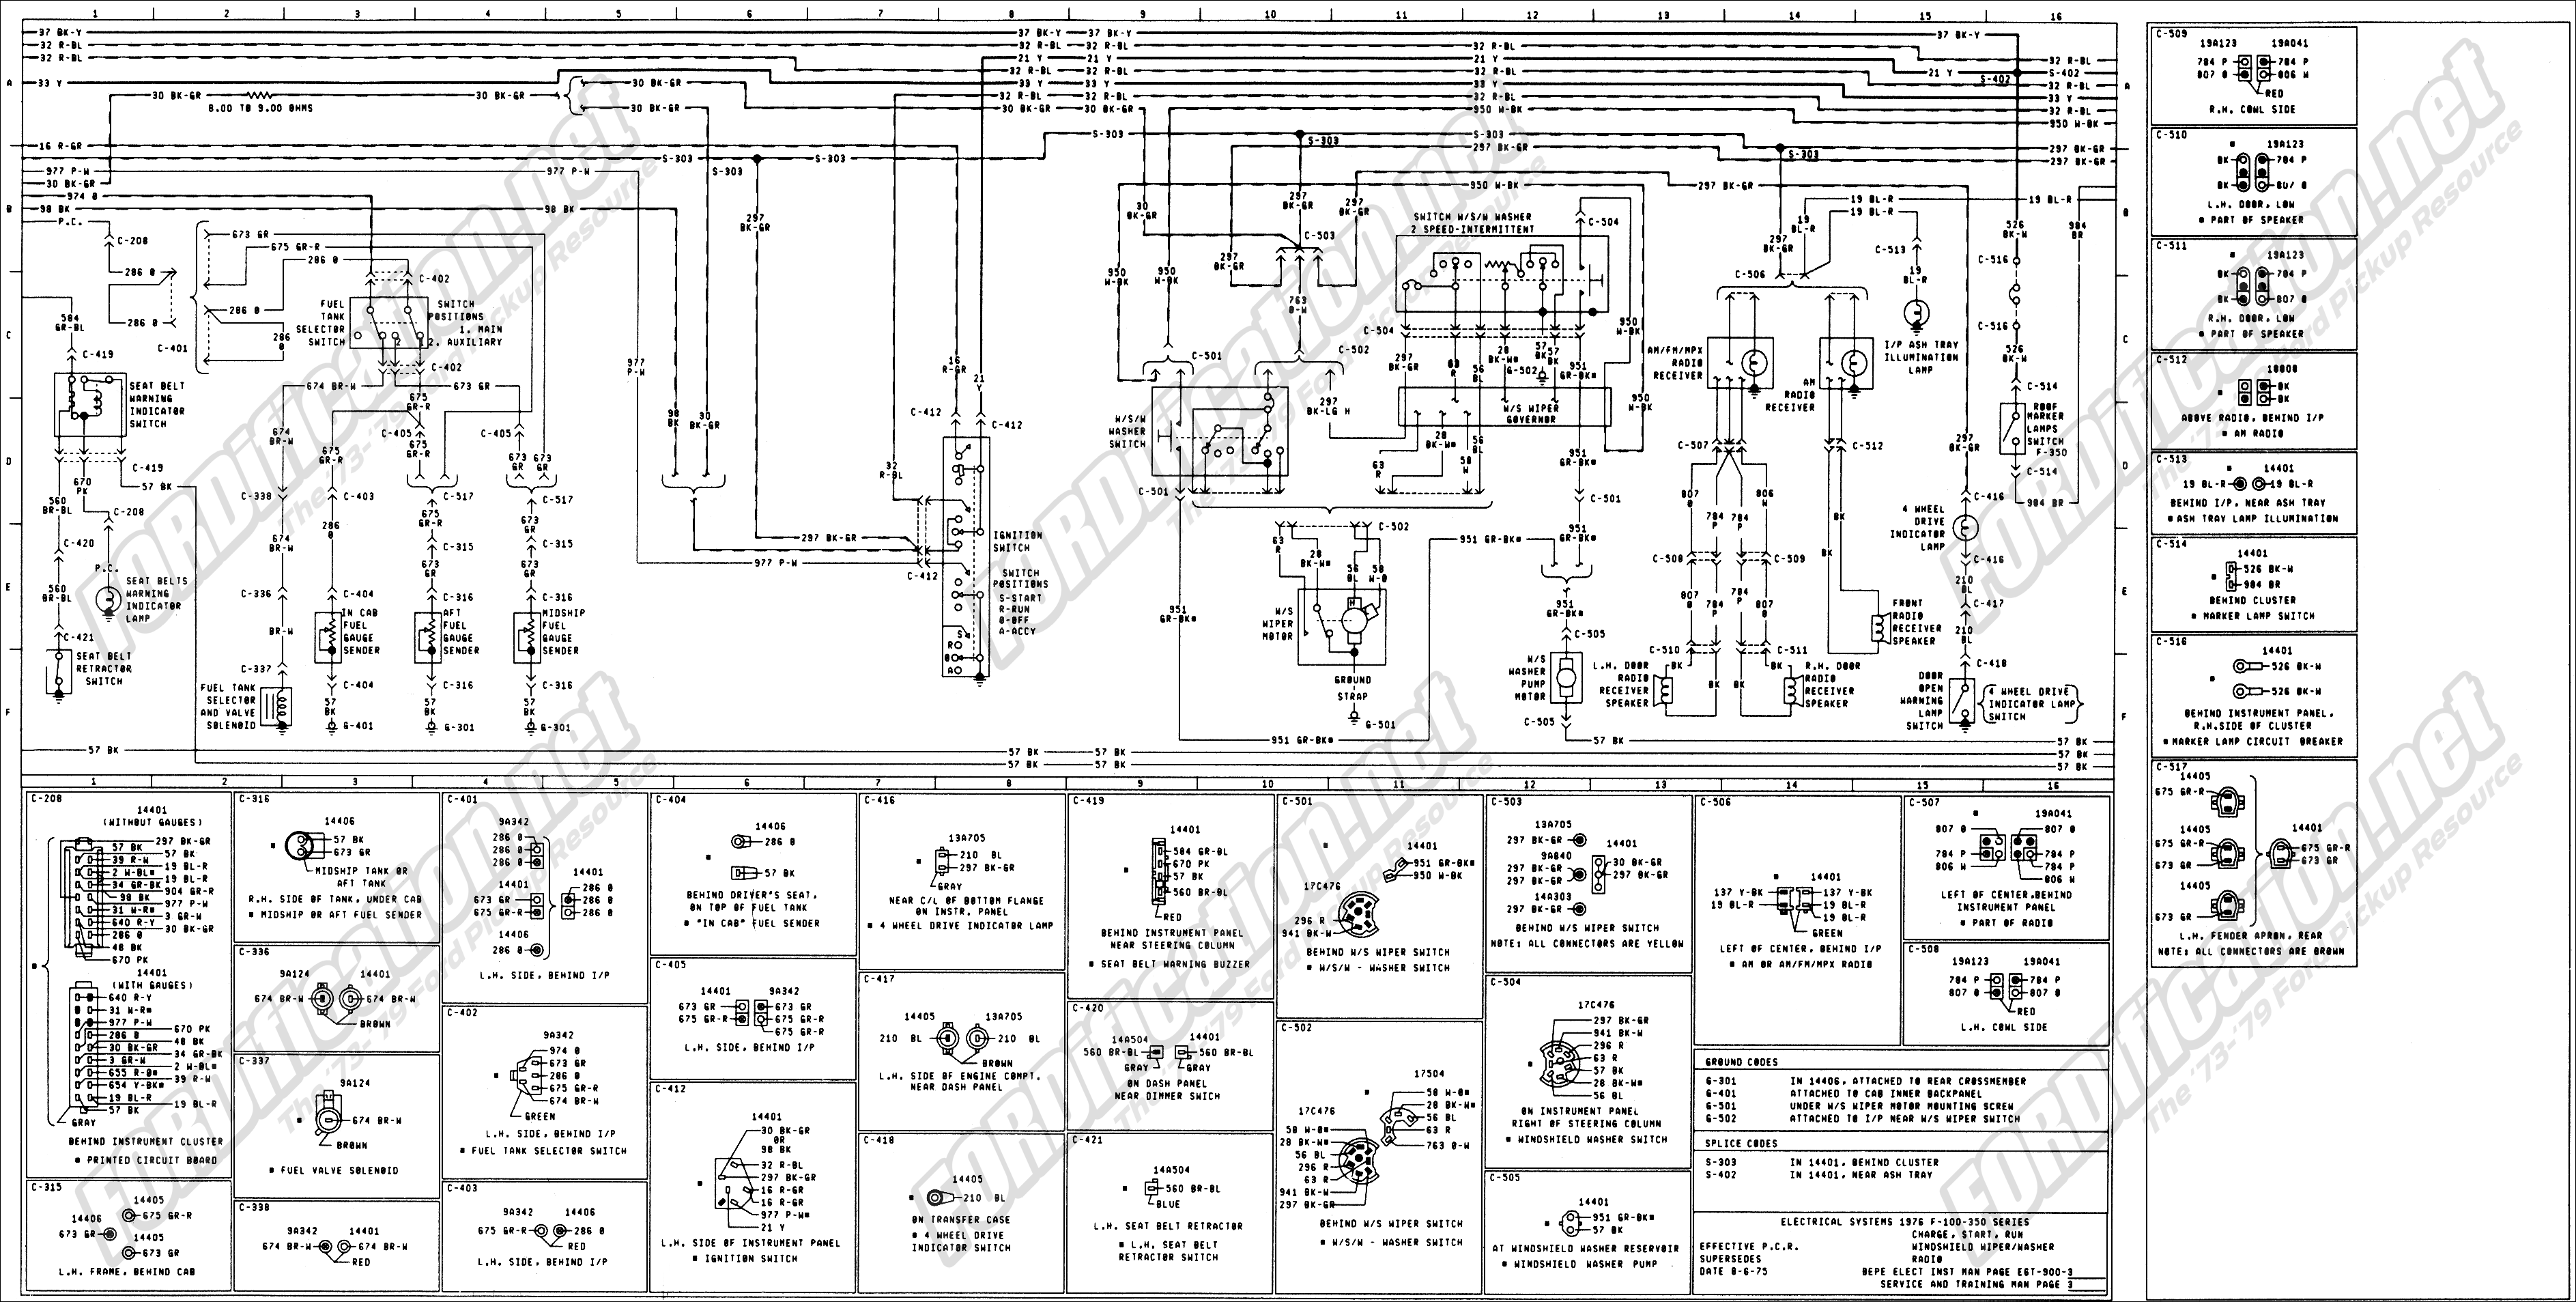 wiring_76master_3of9 ford ranger & bronco ii electrical diagrams at the ranger station 1979 ford truck fuse box diagram at nearapp.co